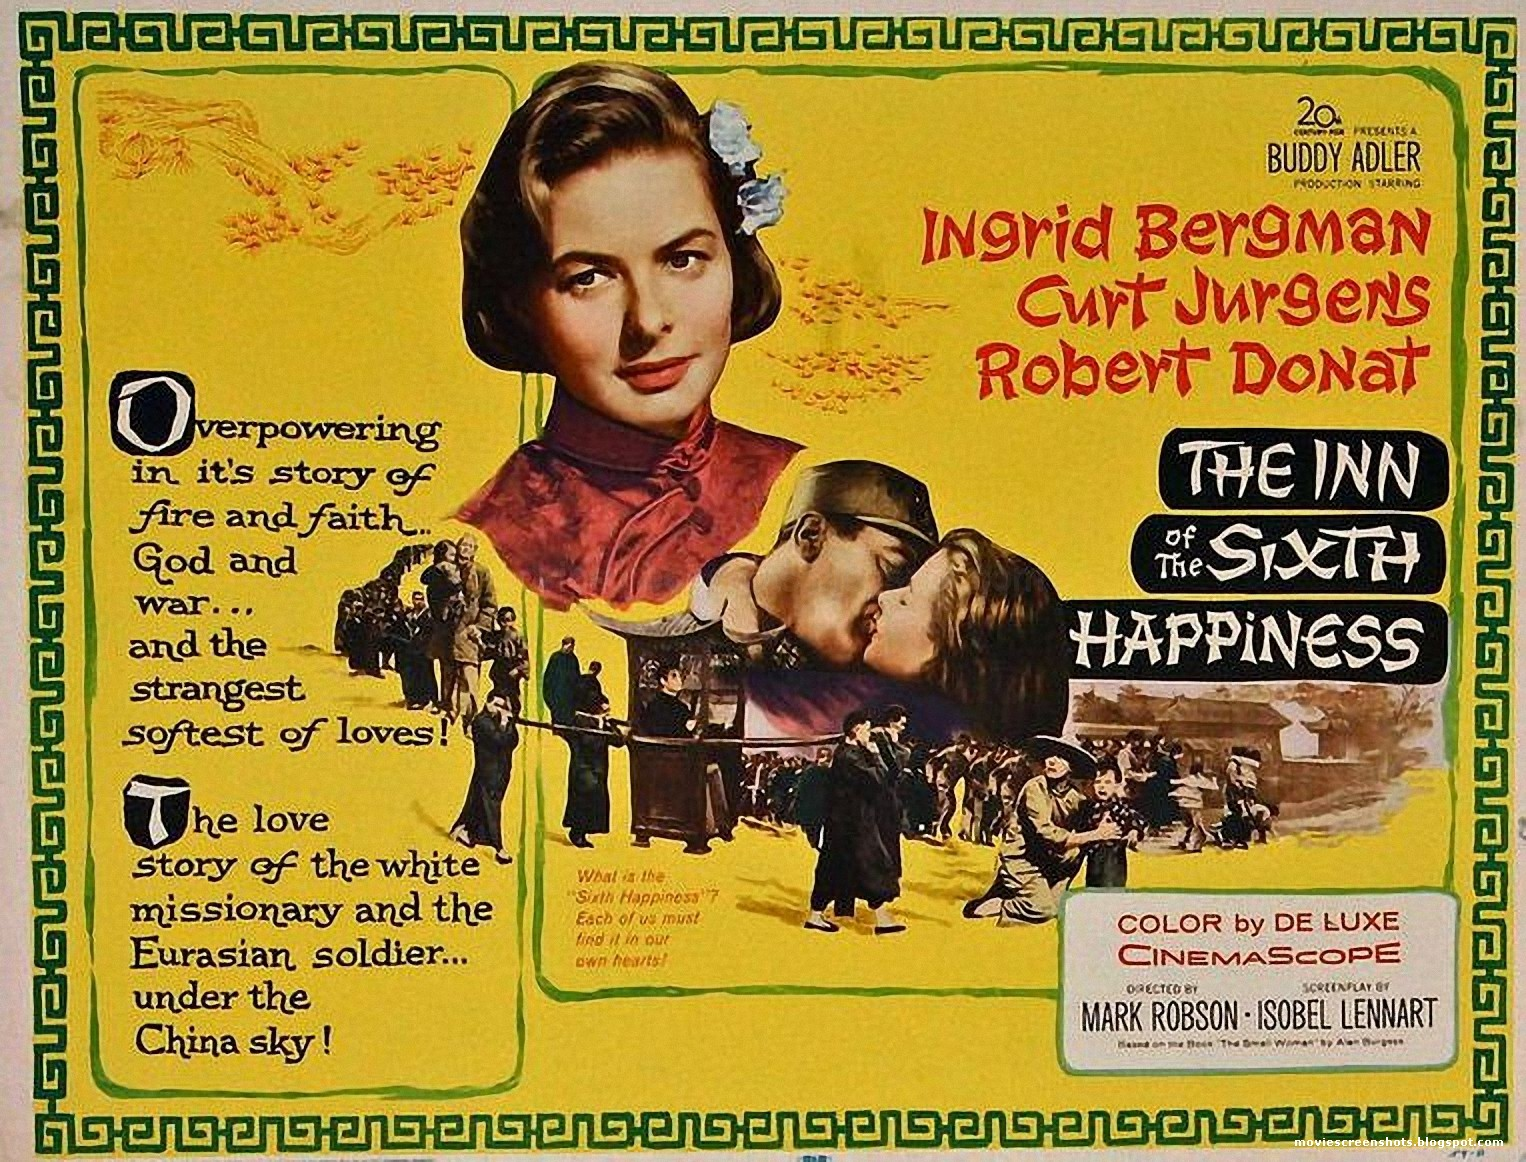 The Inn of the Sixth Happiness (1958)  –  Drama, War, Biography